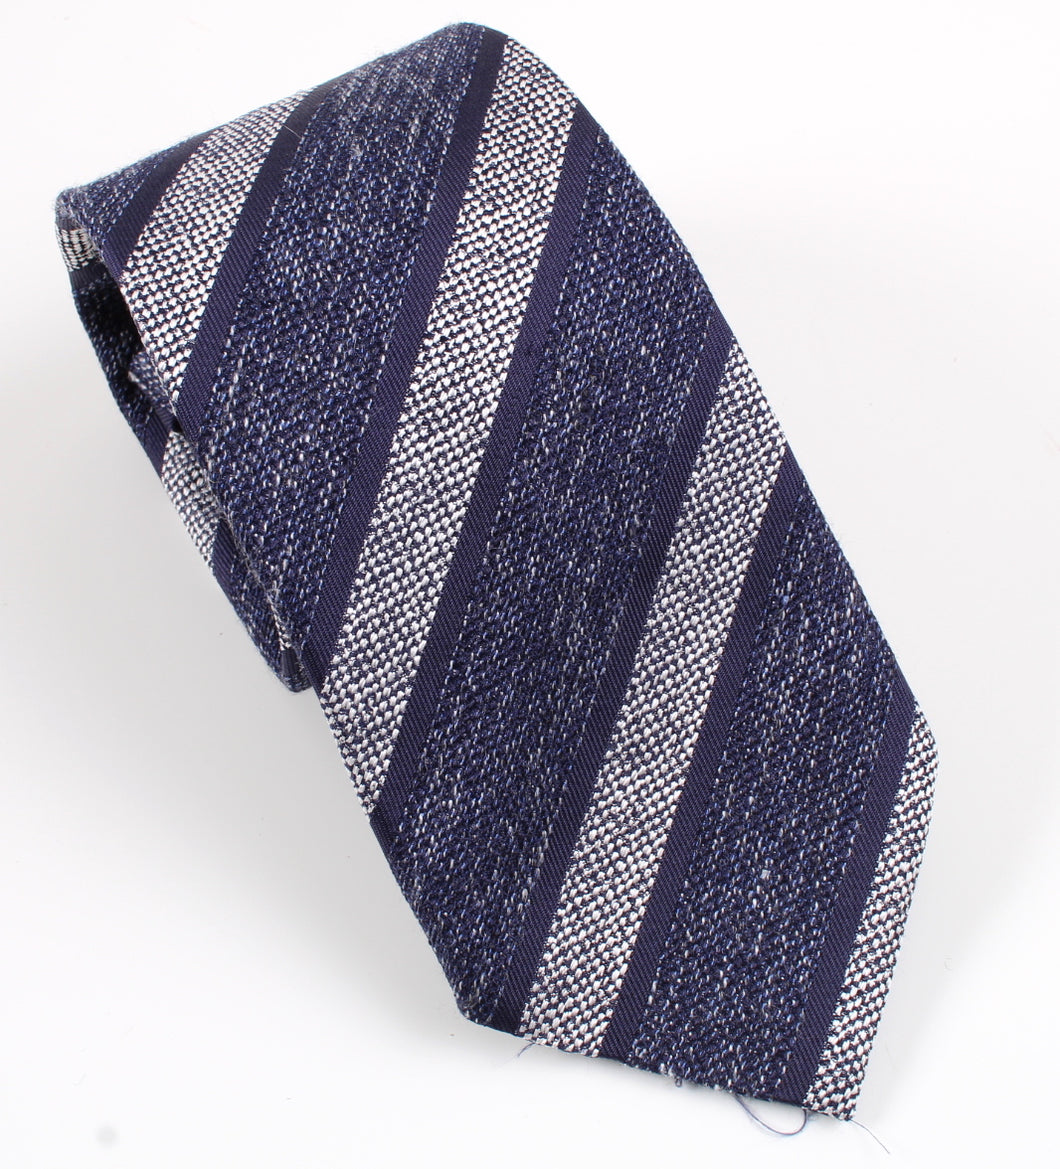 New With Tags SUITSUPPLY Navy Silver Silk, Linen and Wool Tie